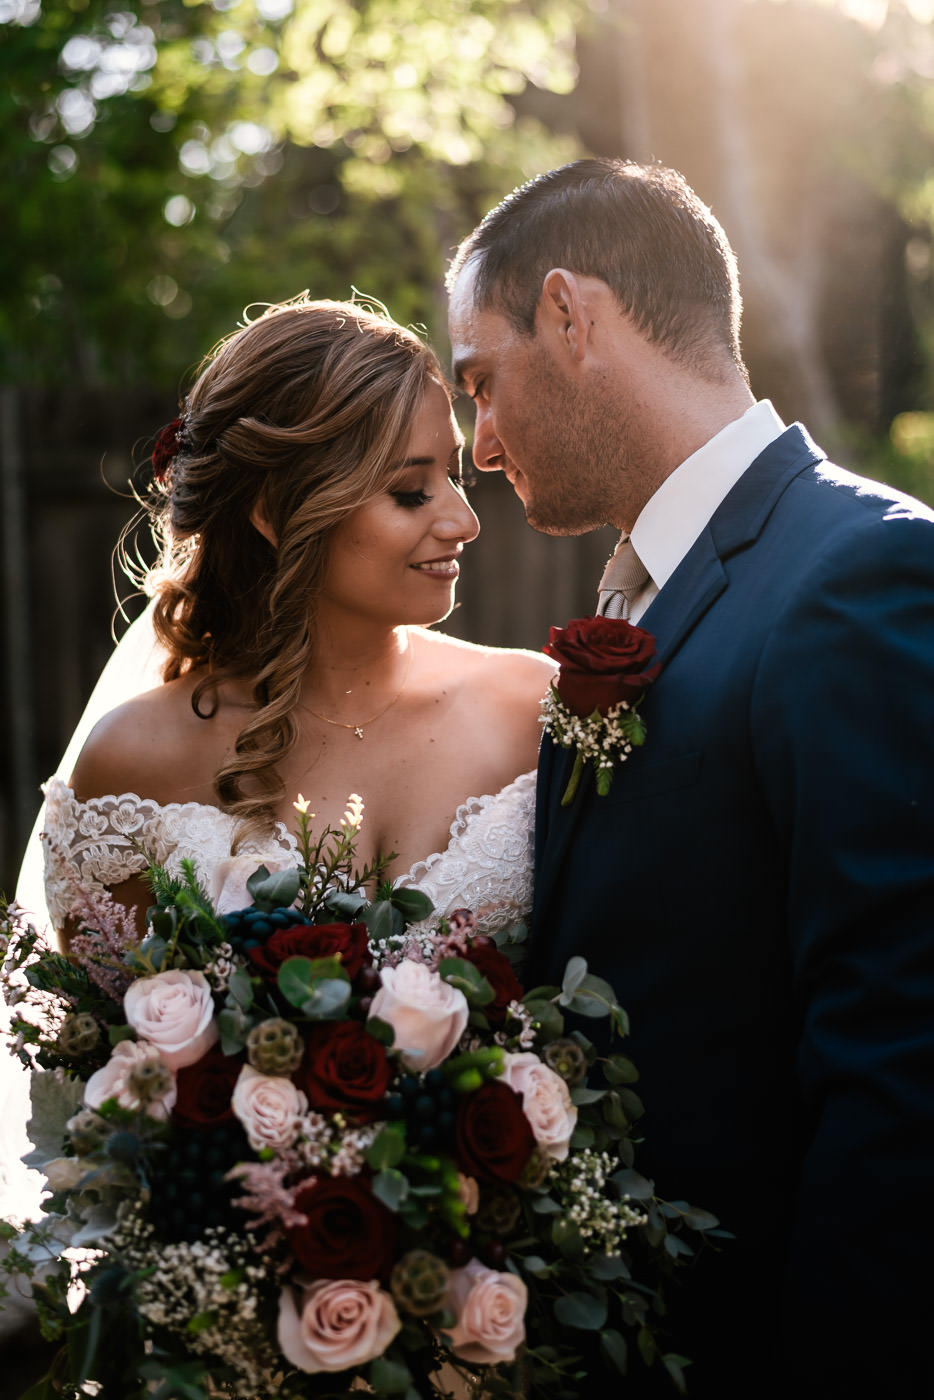 Beautiful portrait of a newly married couple at The Homestead at Wilshire Ranch.